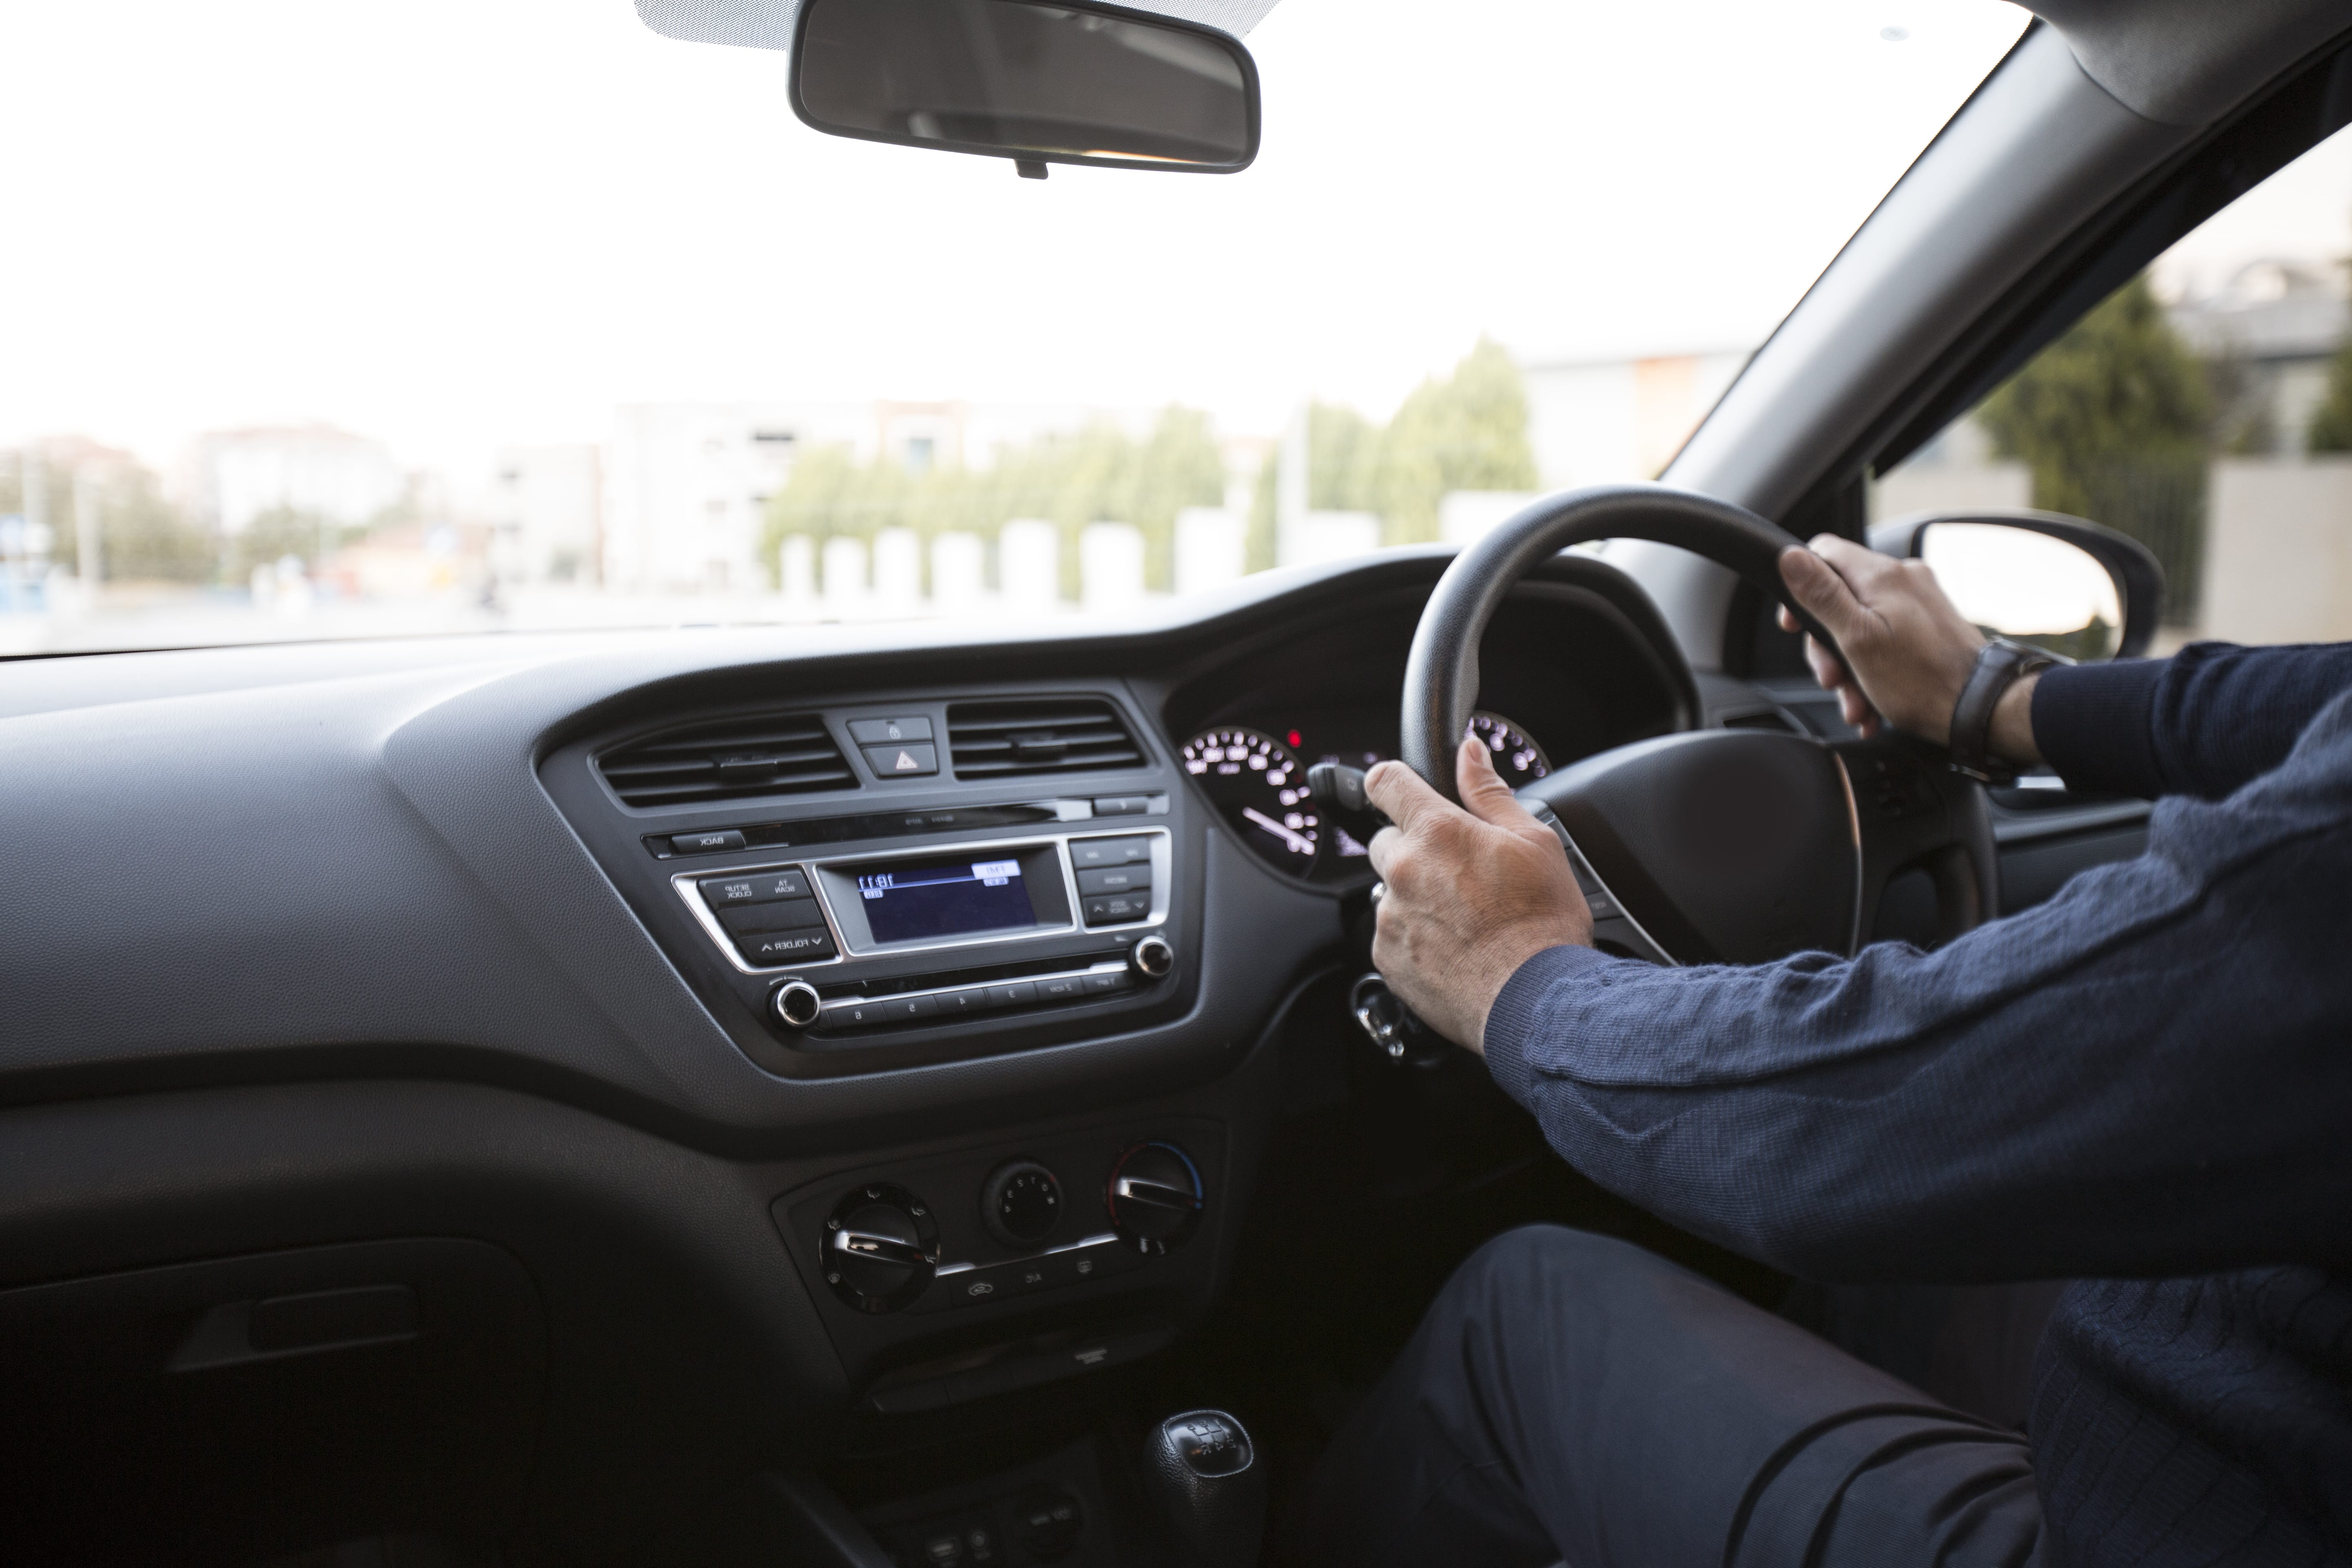 Driving Safety Culture Survey 2018